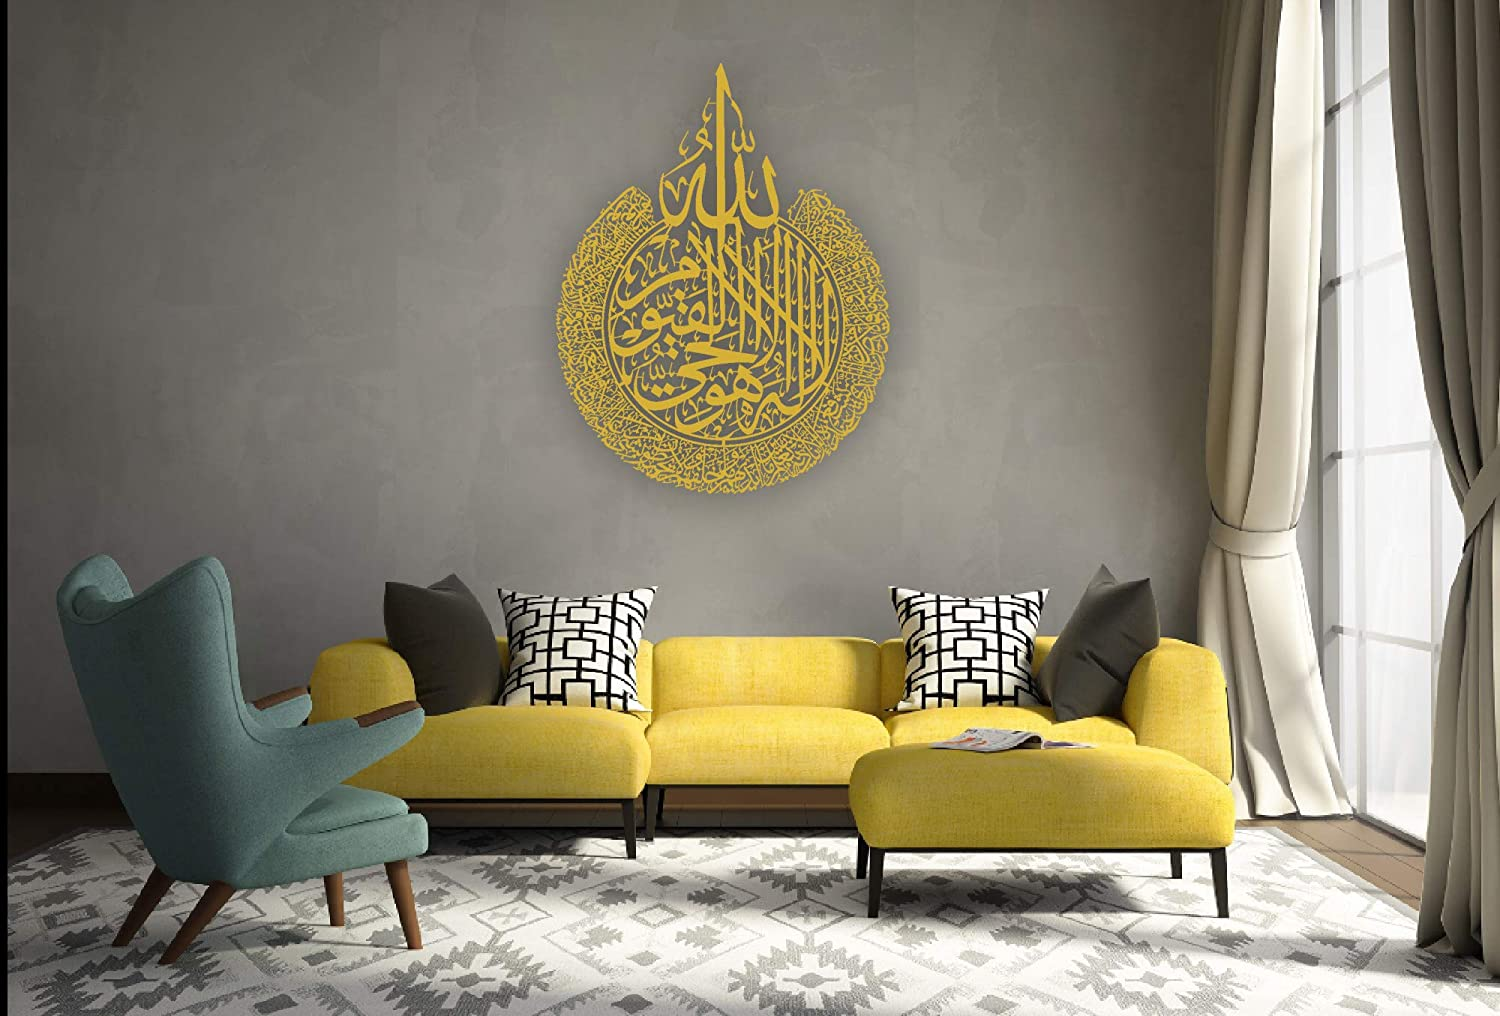 Large Metal Ayatul Kursi Wall Art, Islamic Wall Art, Islamic Gifts, Metal, Calligraphy, Black, Gold, Cooper Tones, Muslim Gifts, Quran Art, Islamic Home Decor, 35,5 x45,5 inches (XL Gold Ayatul Kursi)